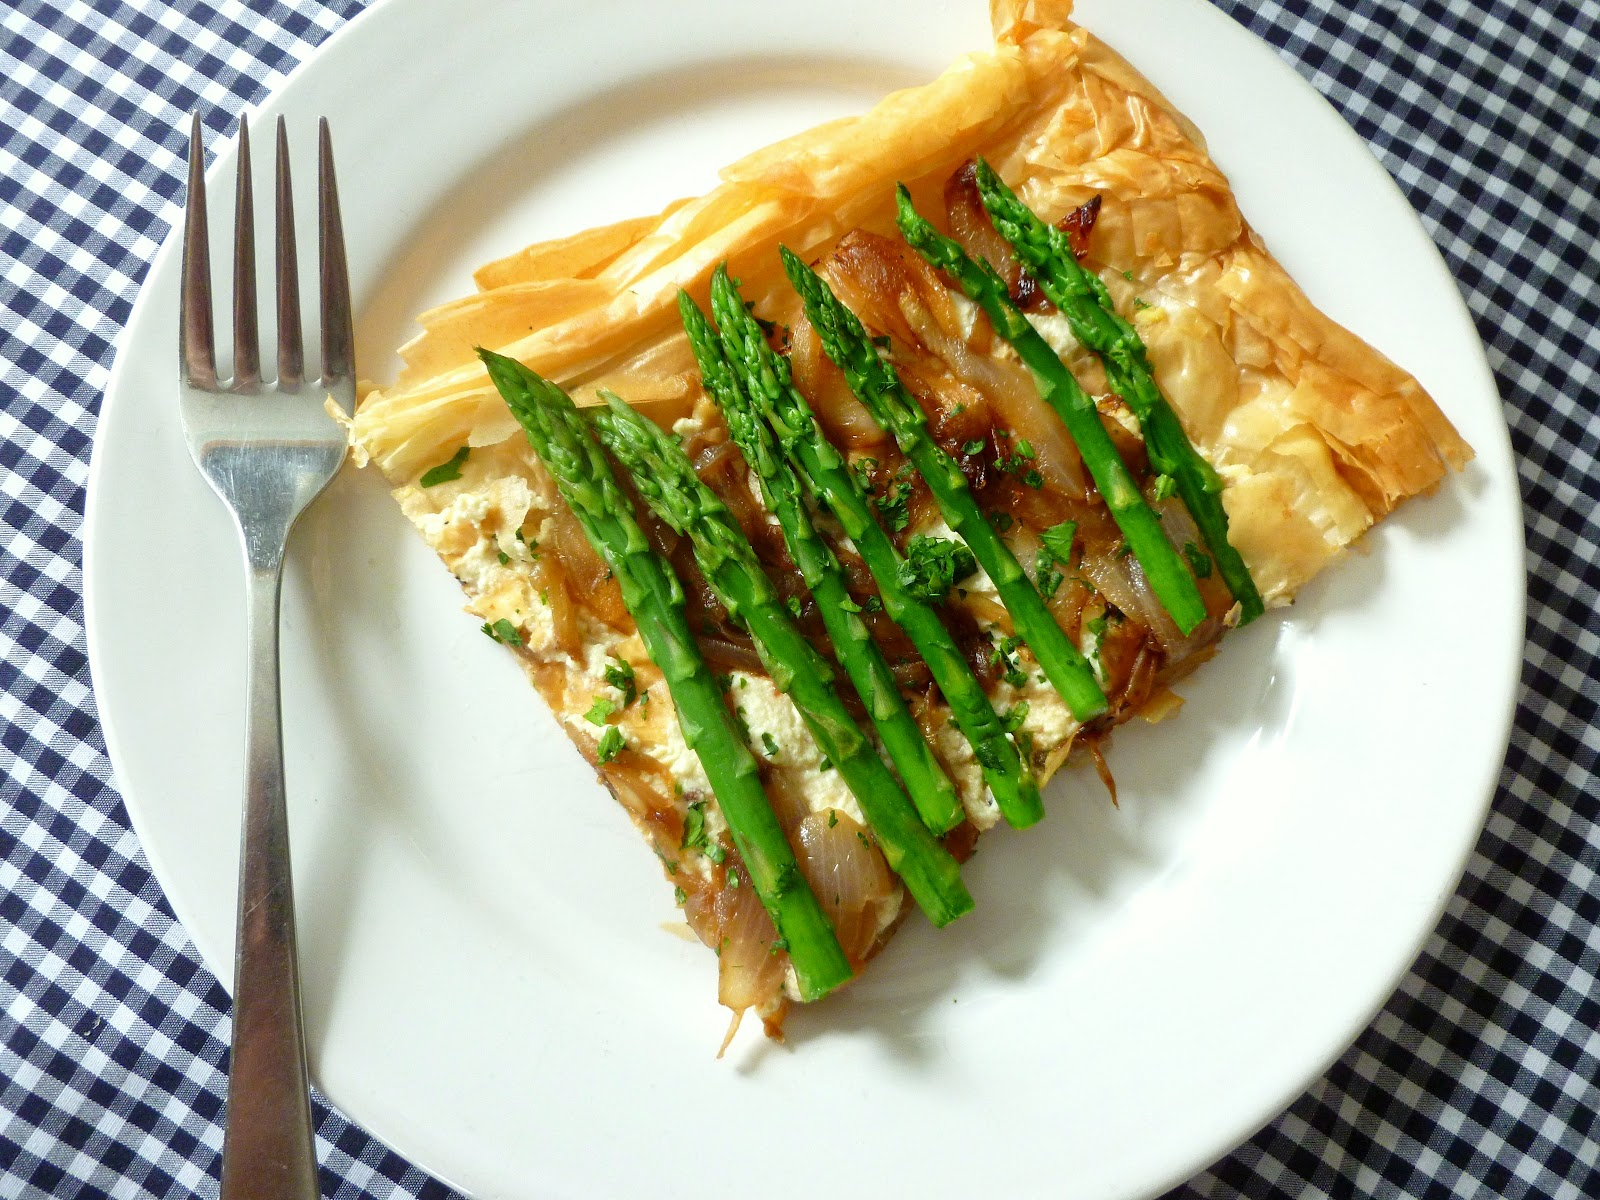 Asparagus & Ricotta Strudel (Vegetarian or Not Your Choice.)